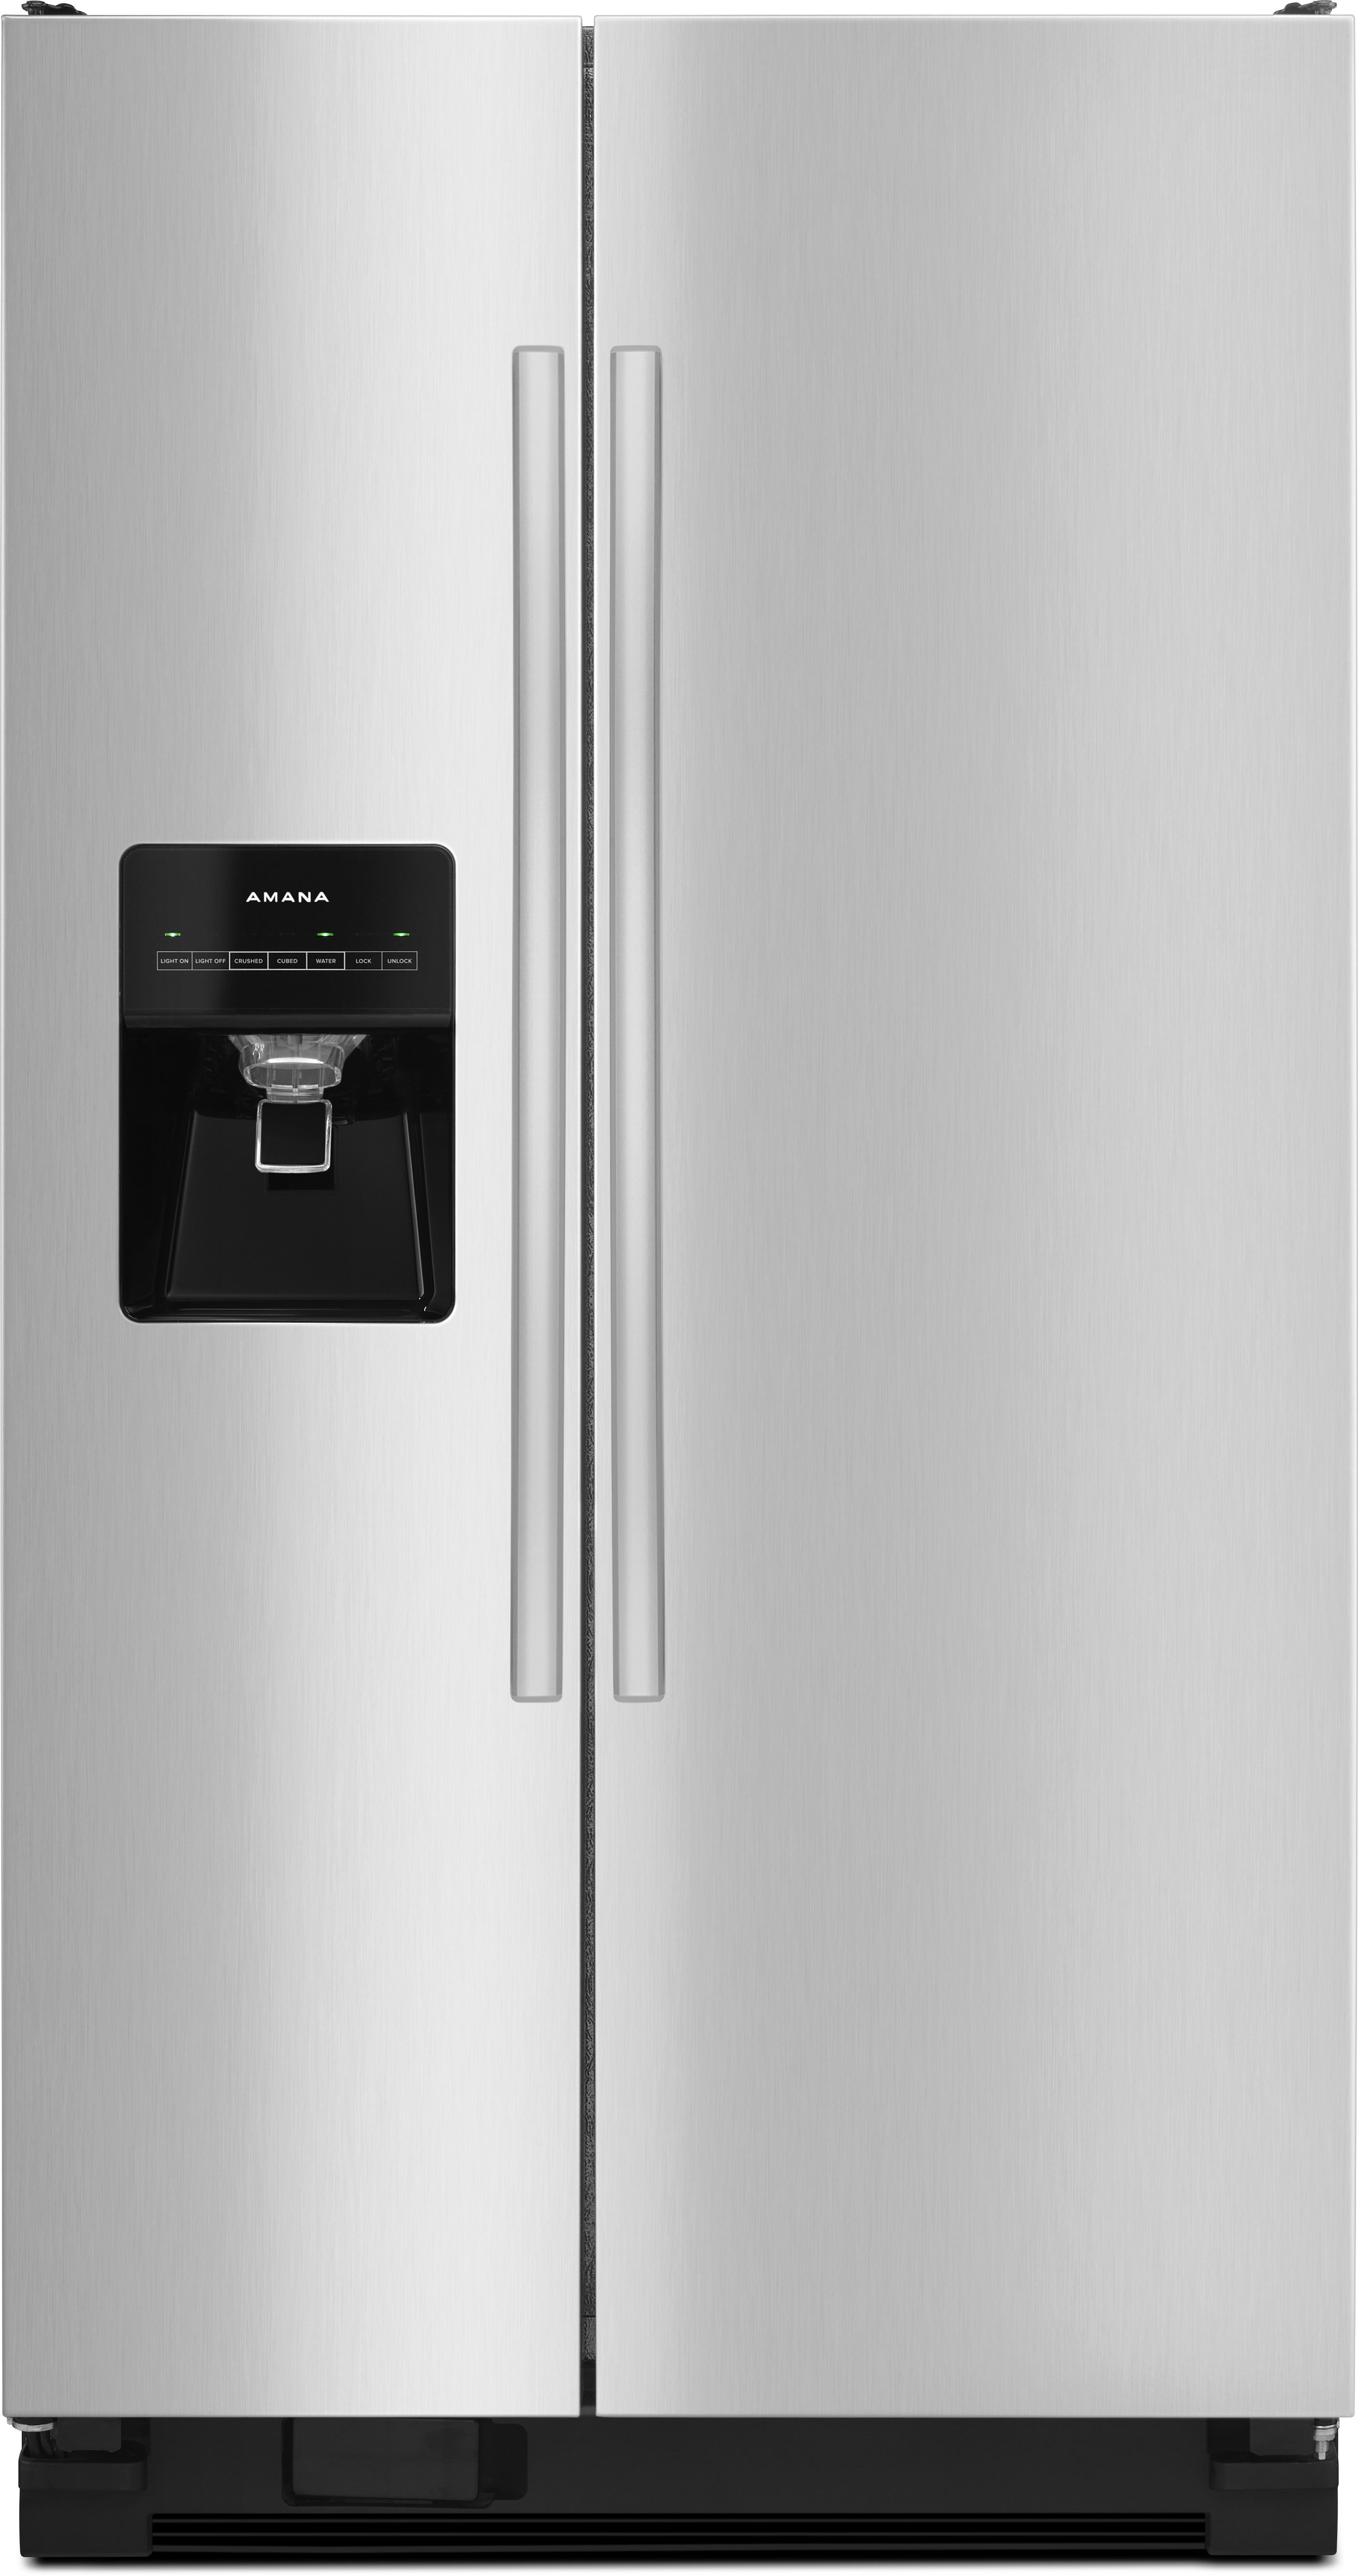 Amana Asi2575frs 36 Inch Side By Side Refrigerator With 24